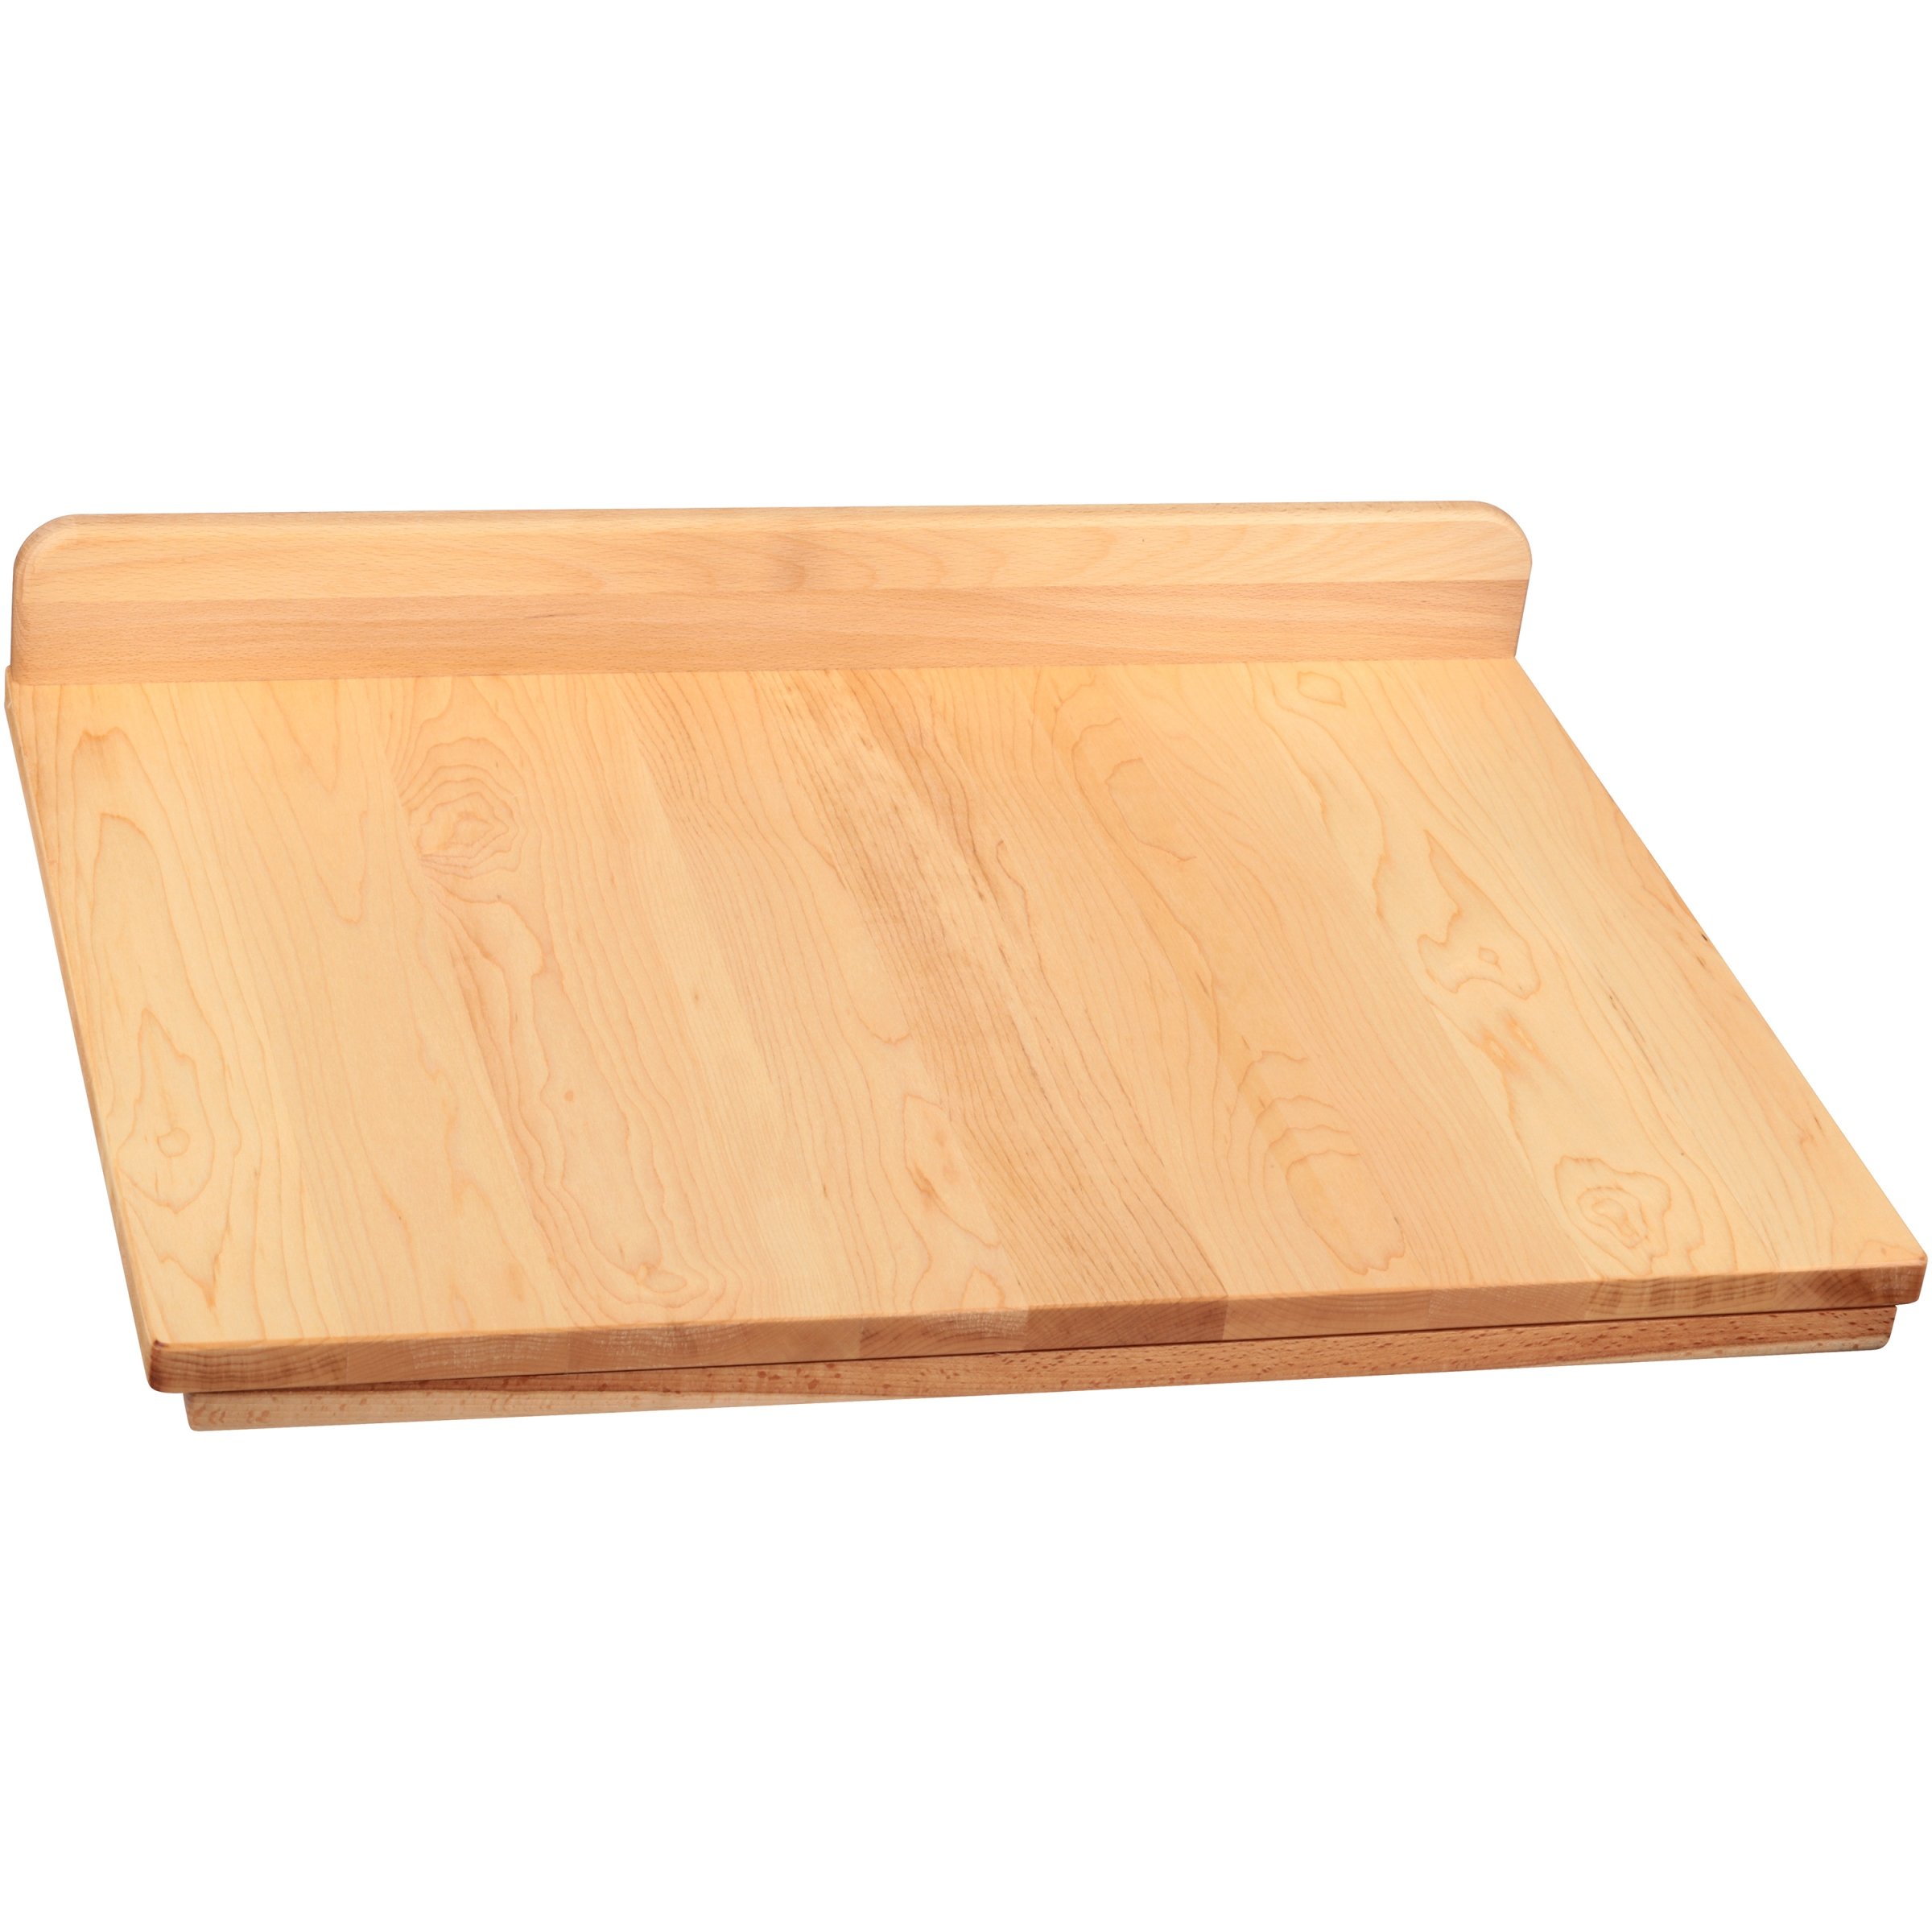 Snow River Recovered Maple Carve & Serve Board